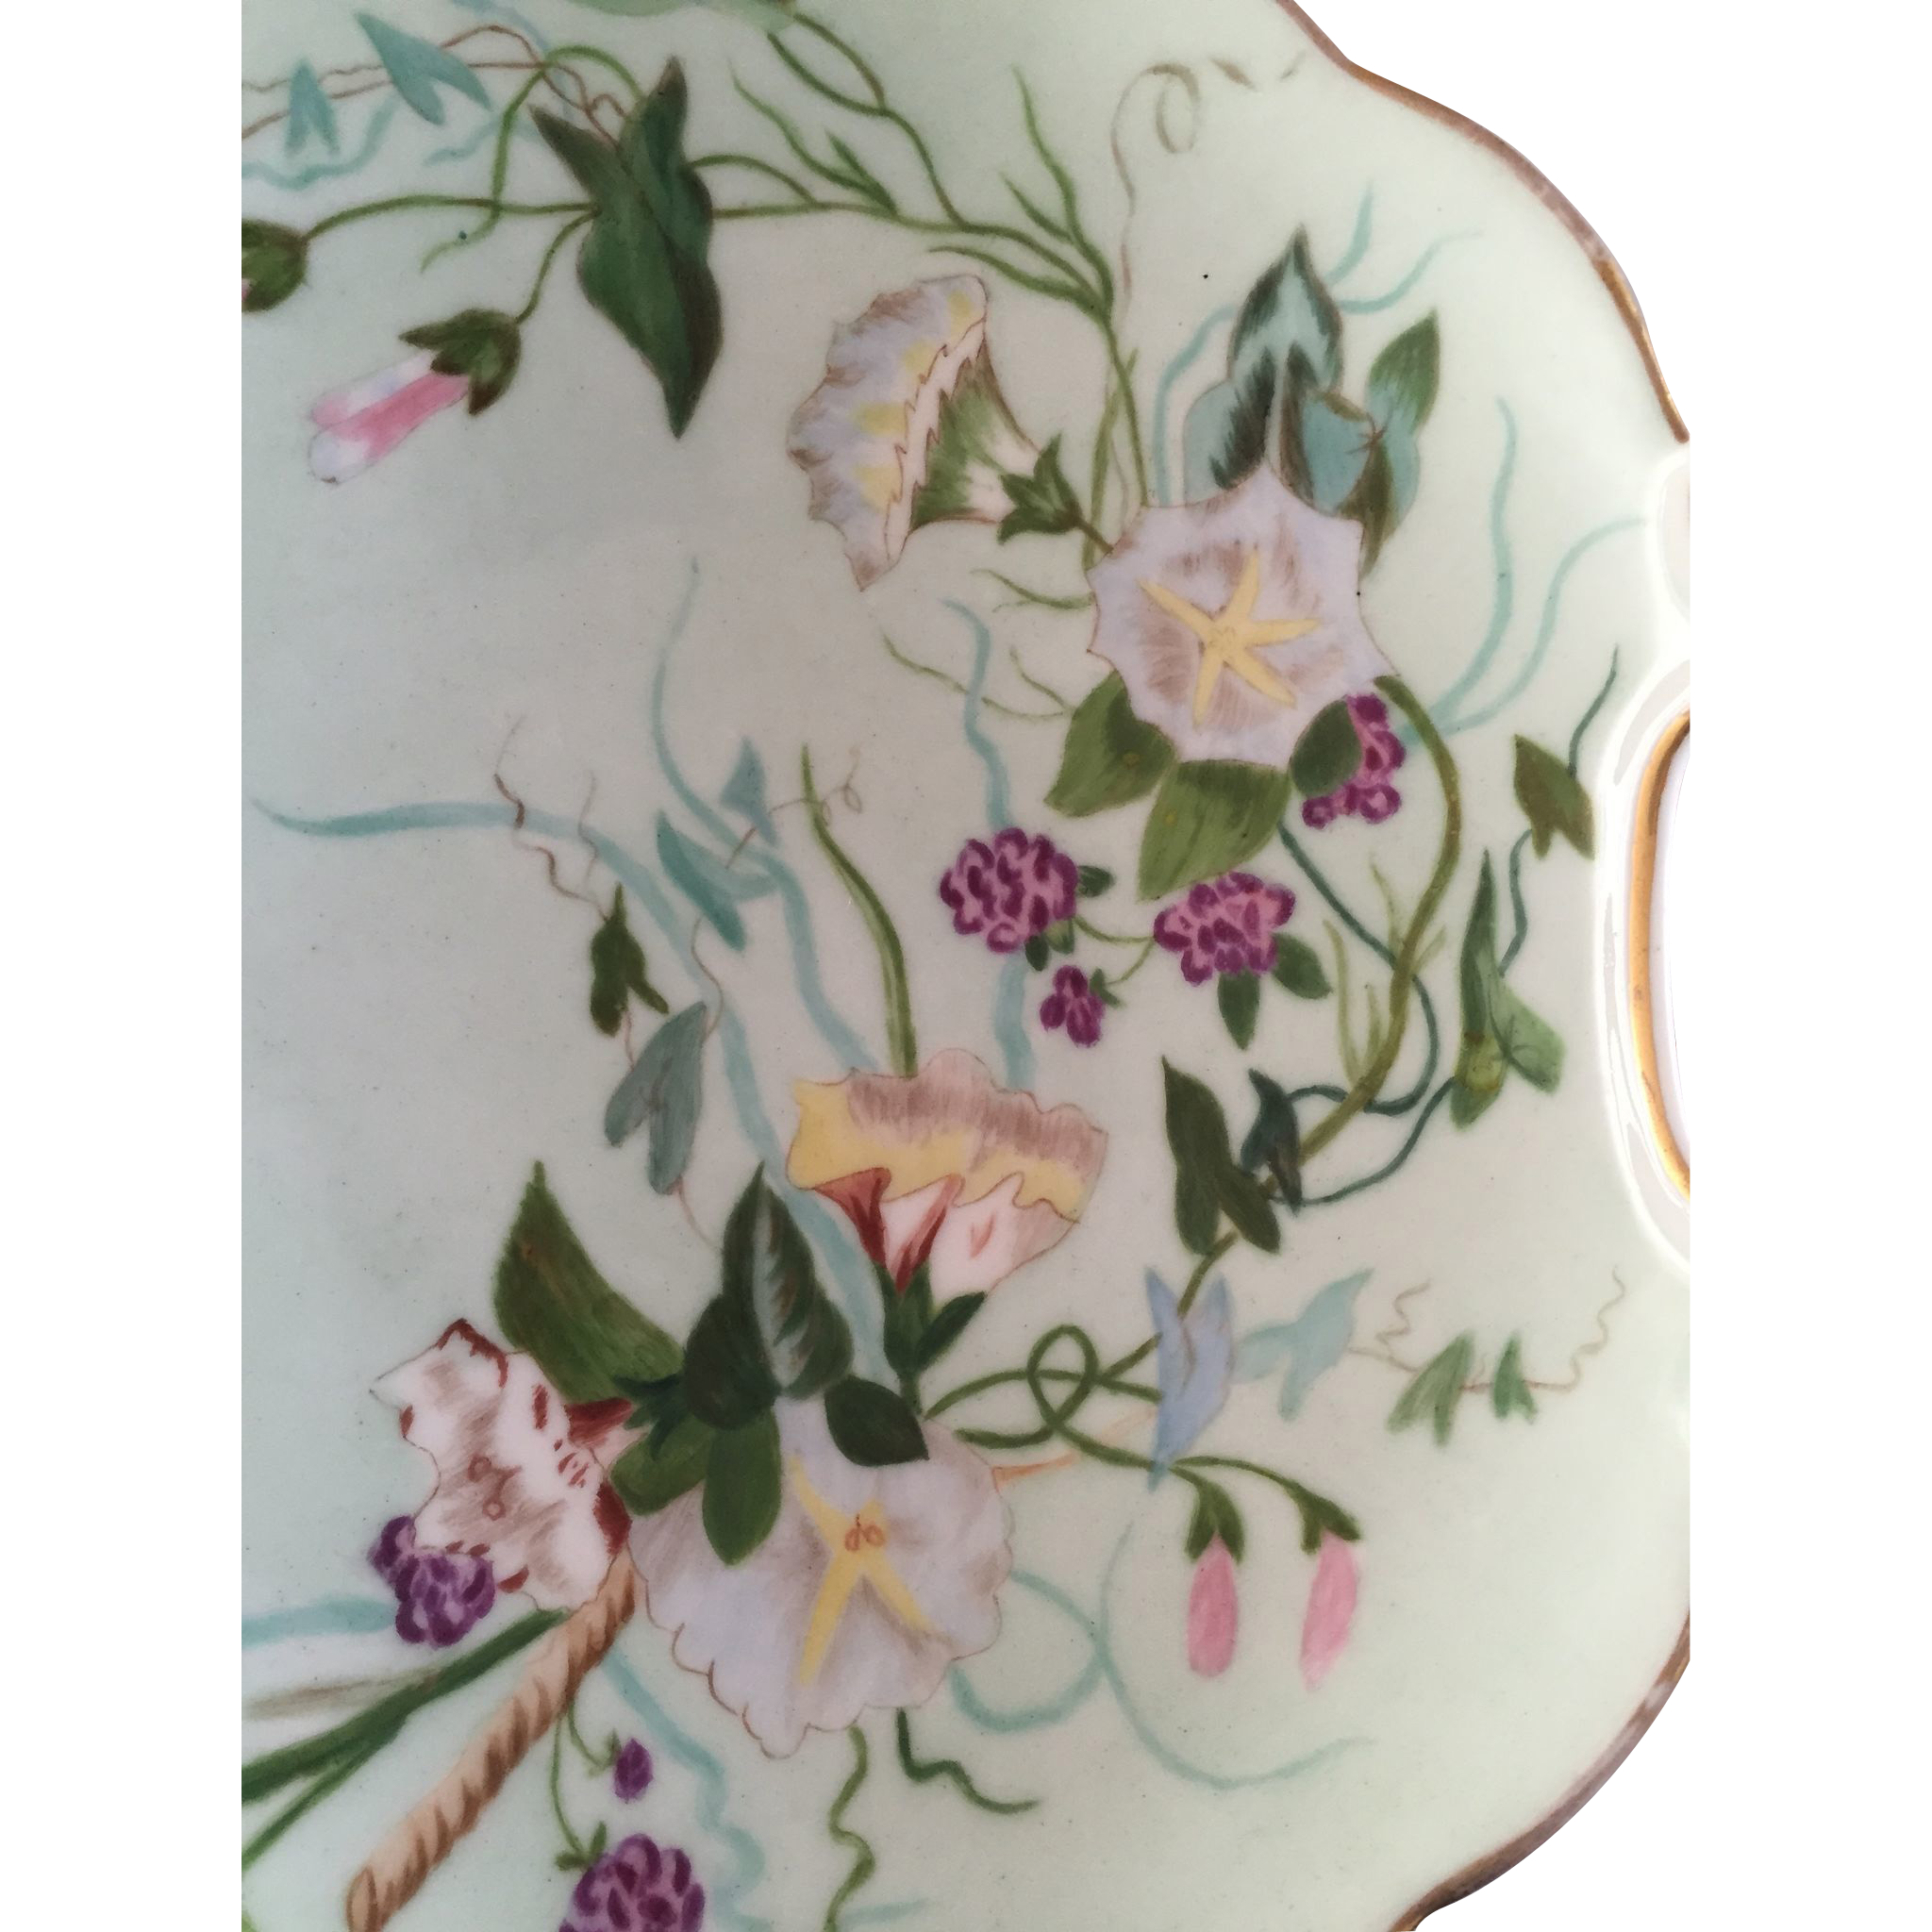 Flowery Decorated Hand Painted Porcelain Plate